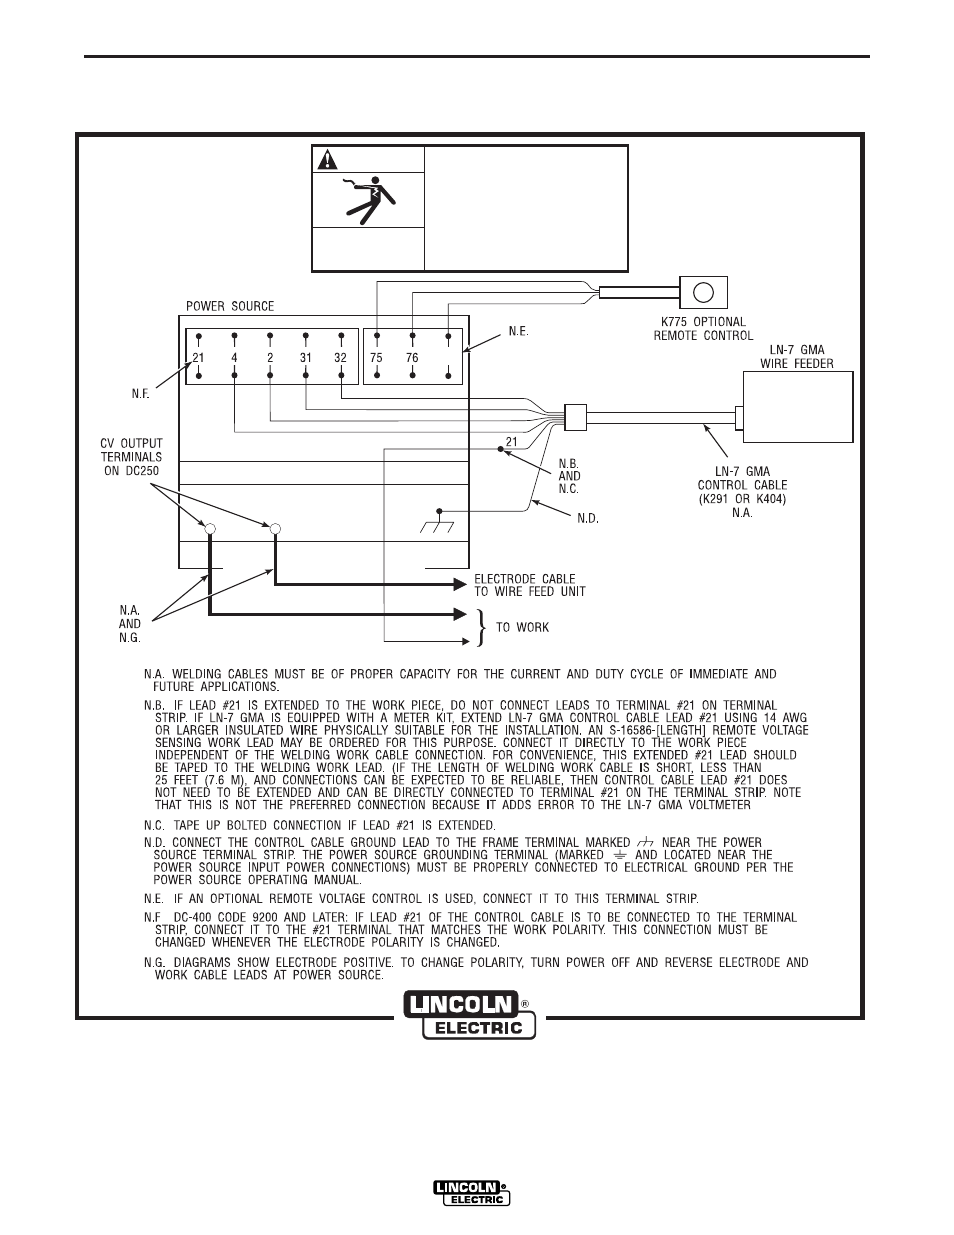 medium resolution of installation lincoln electric ln 7 gma wire feeders user manual page 12 61